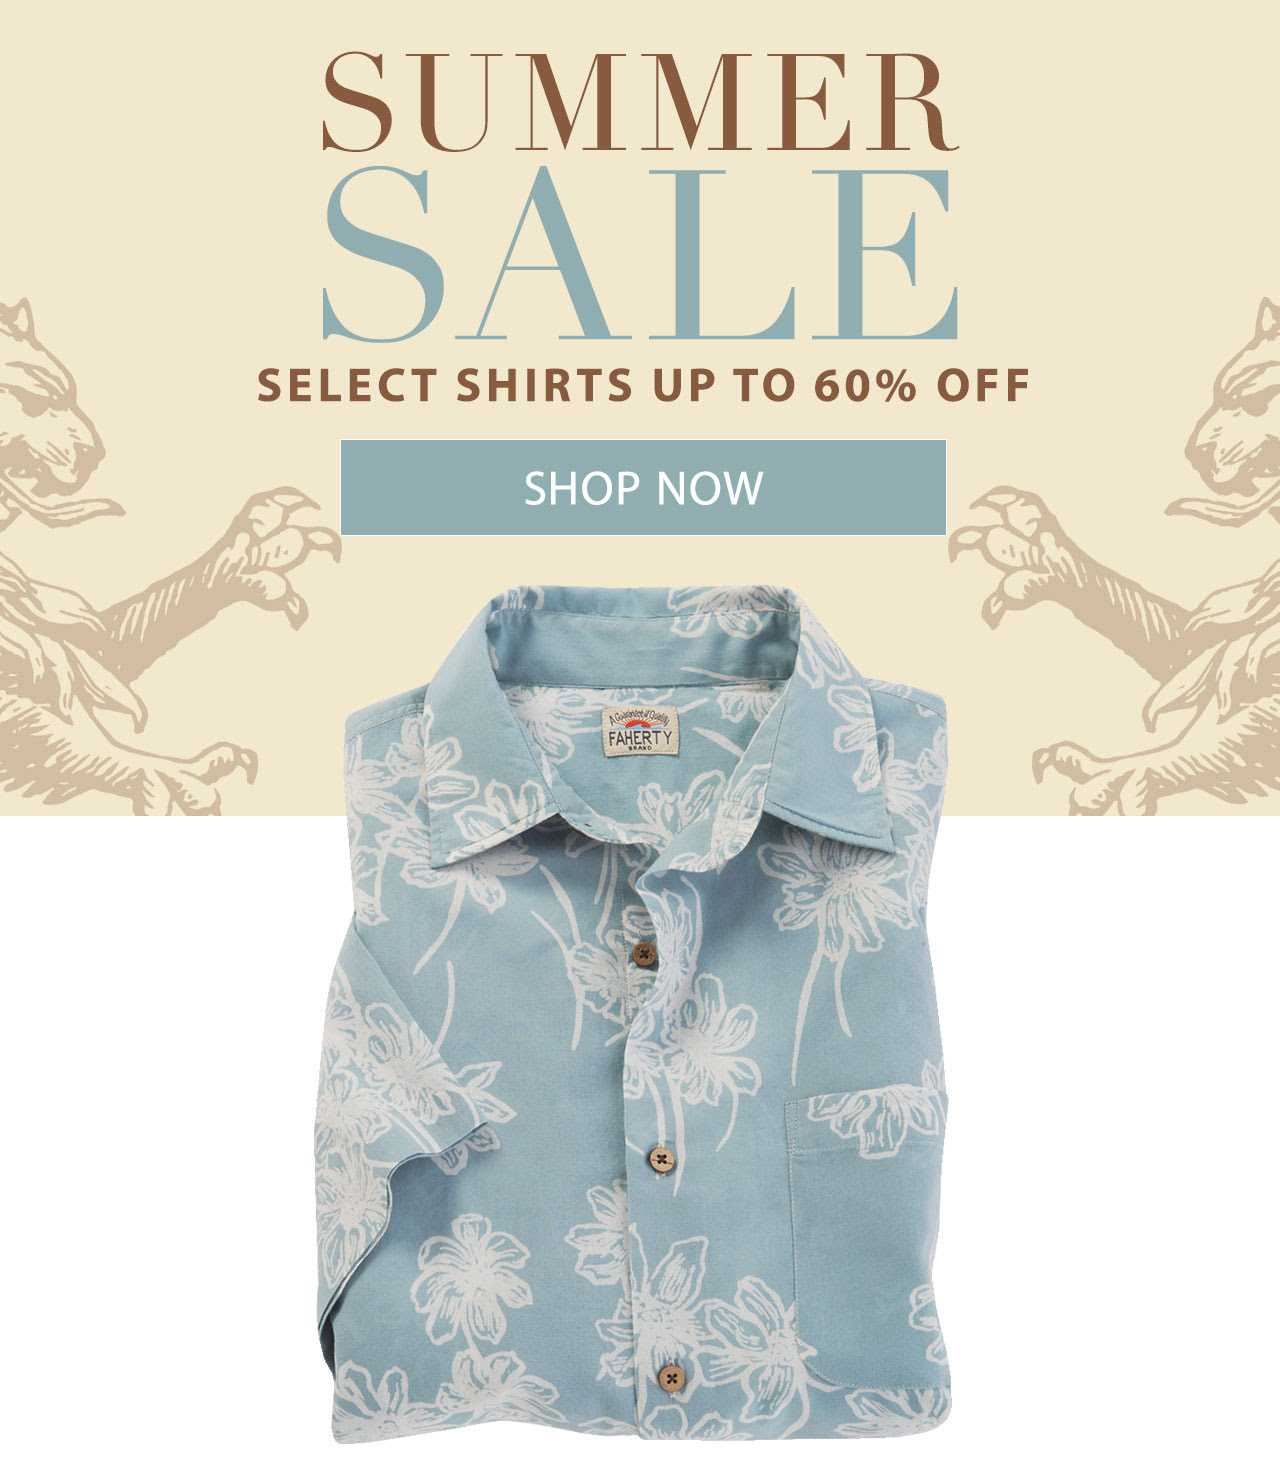 Get select shirts for up to 60% off now at our Summer Sale